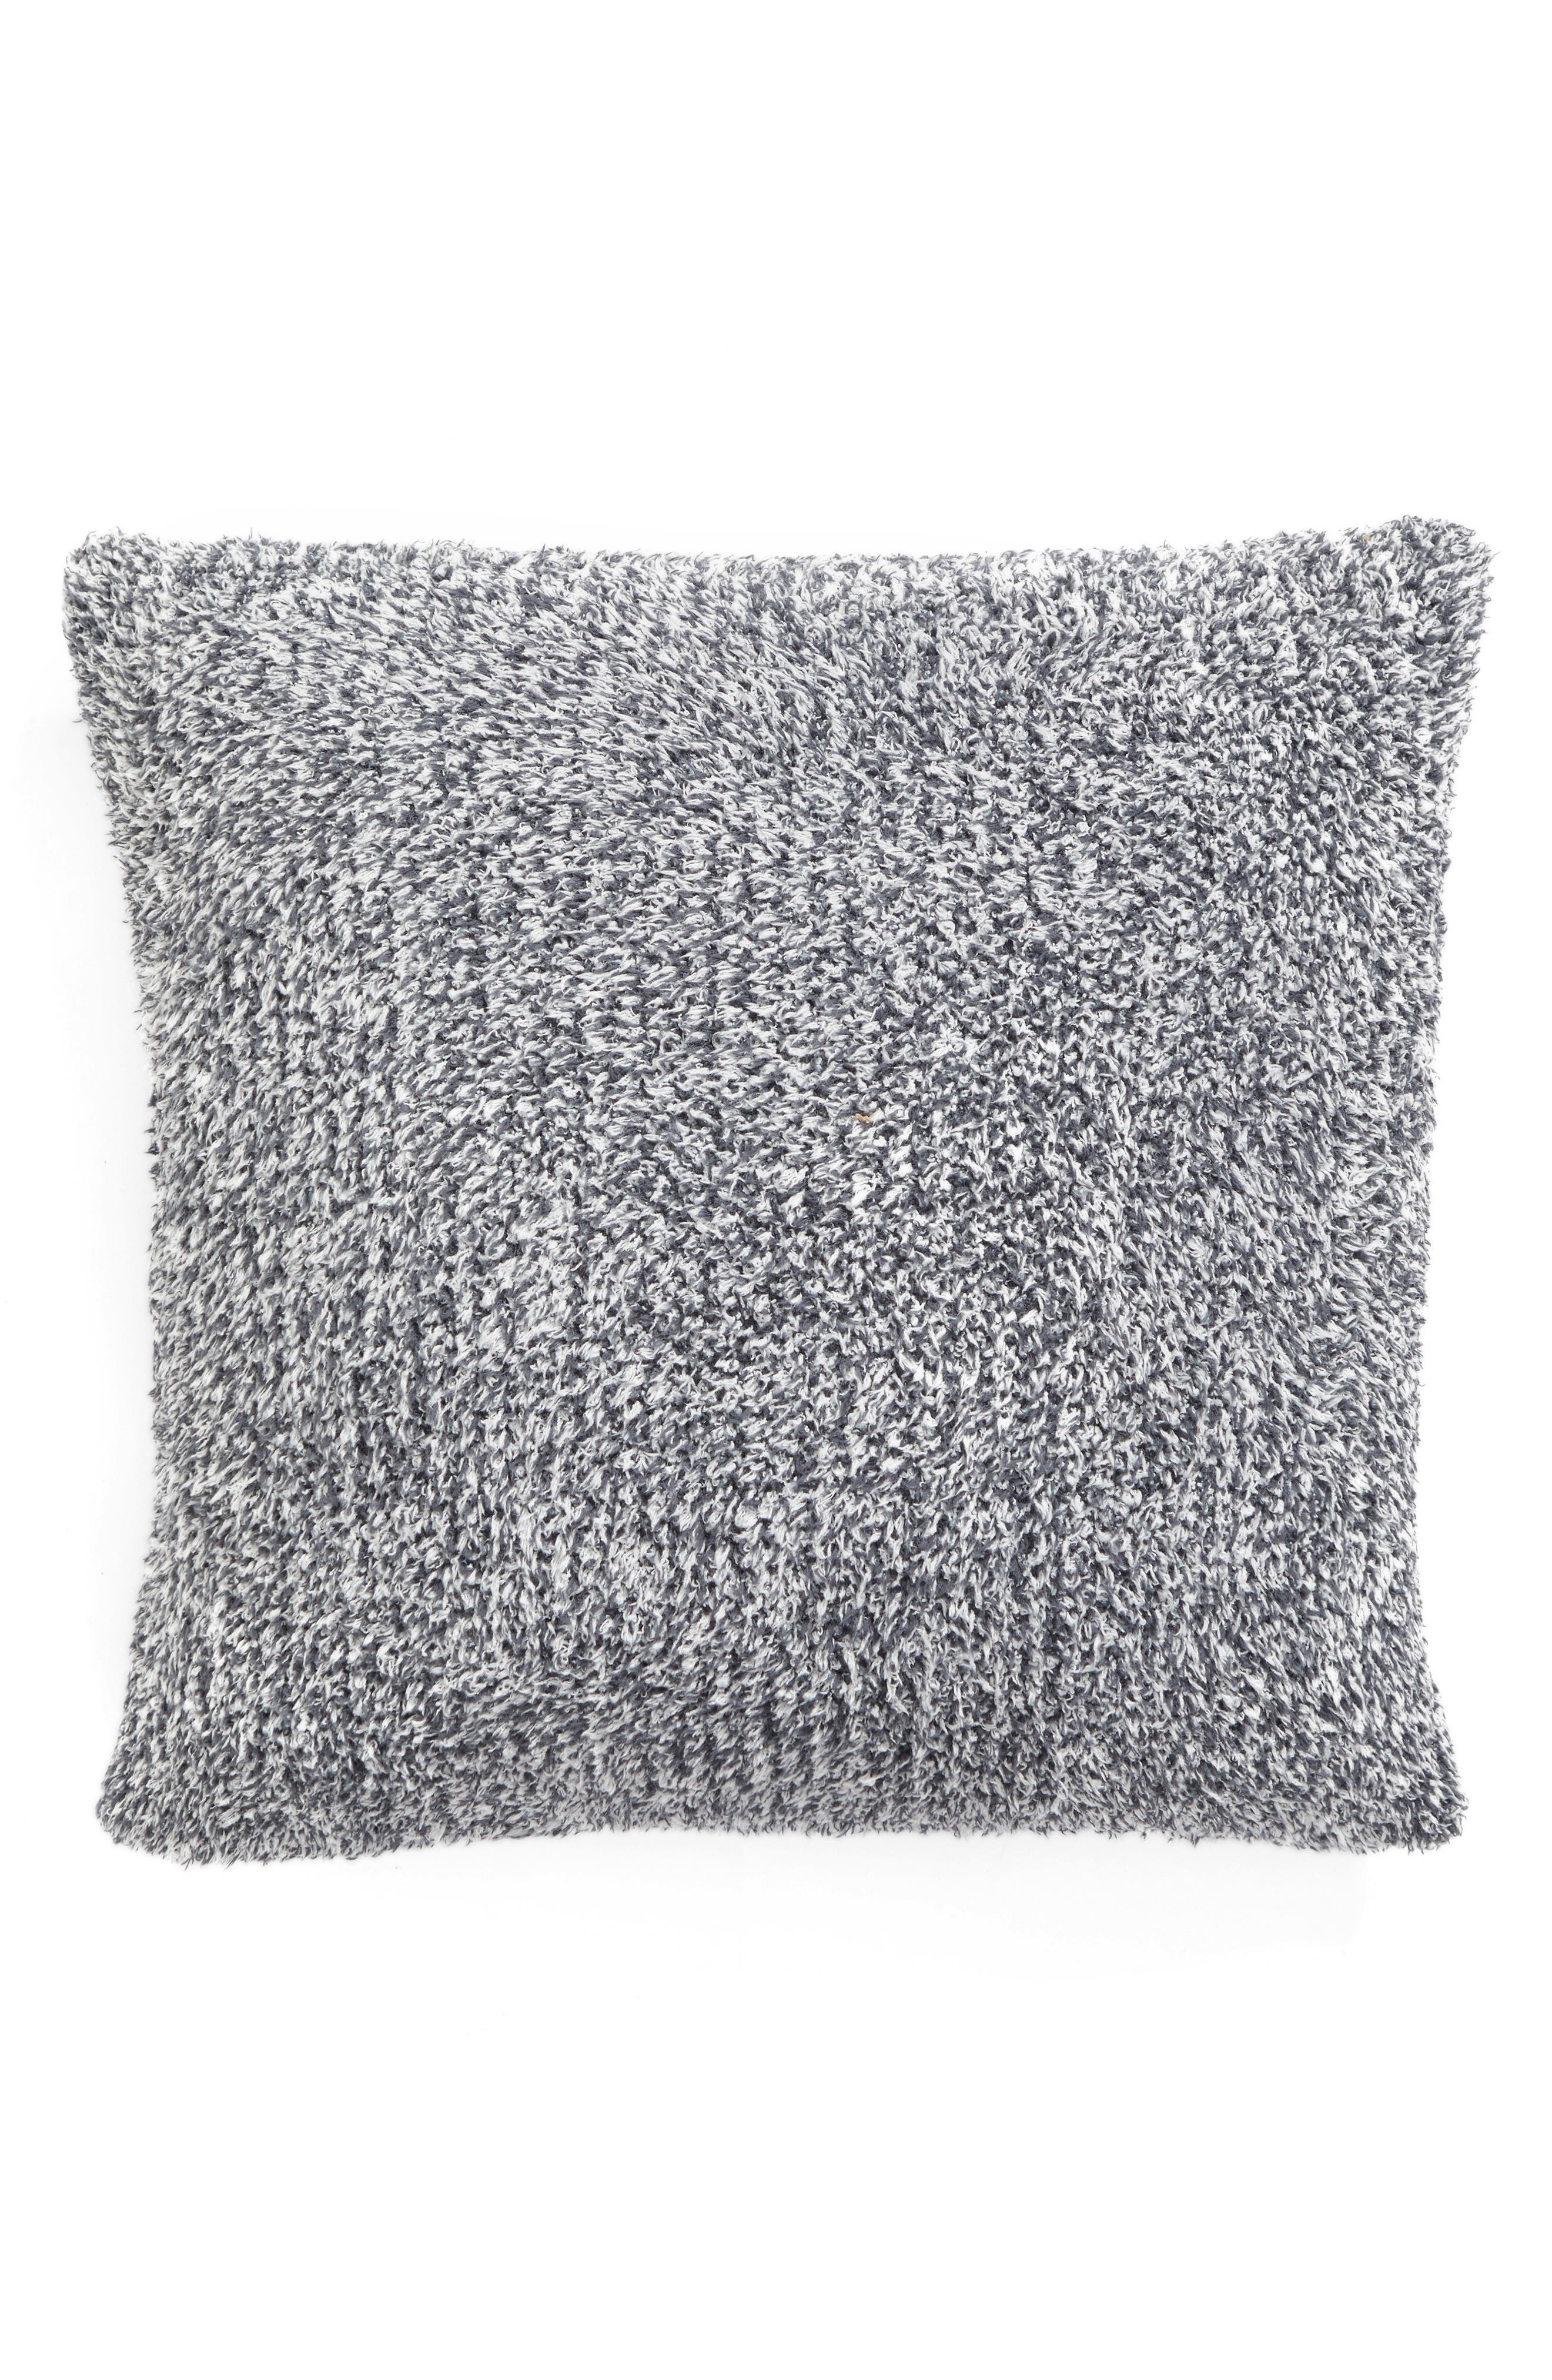 Main Image - Barefoot Dreams® Cozychic® Heathered Accent Pillow